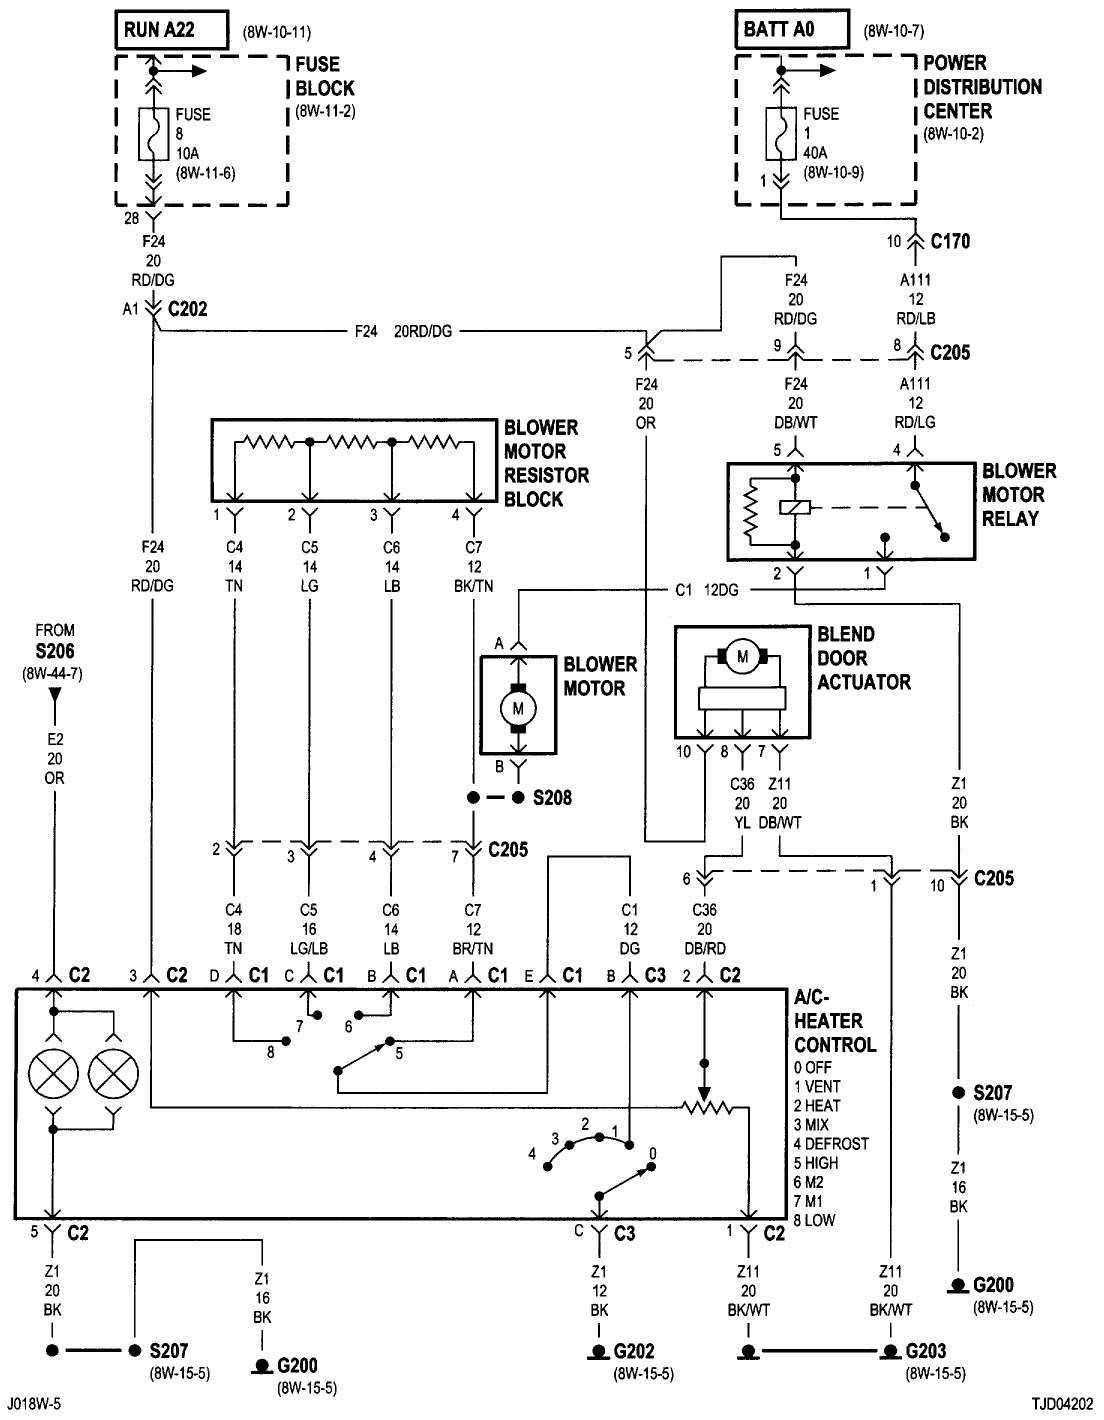 wiring diagram electrical wiring diagram electrical 2001 Jeep Wrangler TJ Wiring-Diagram